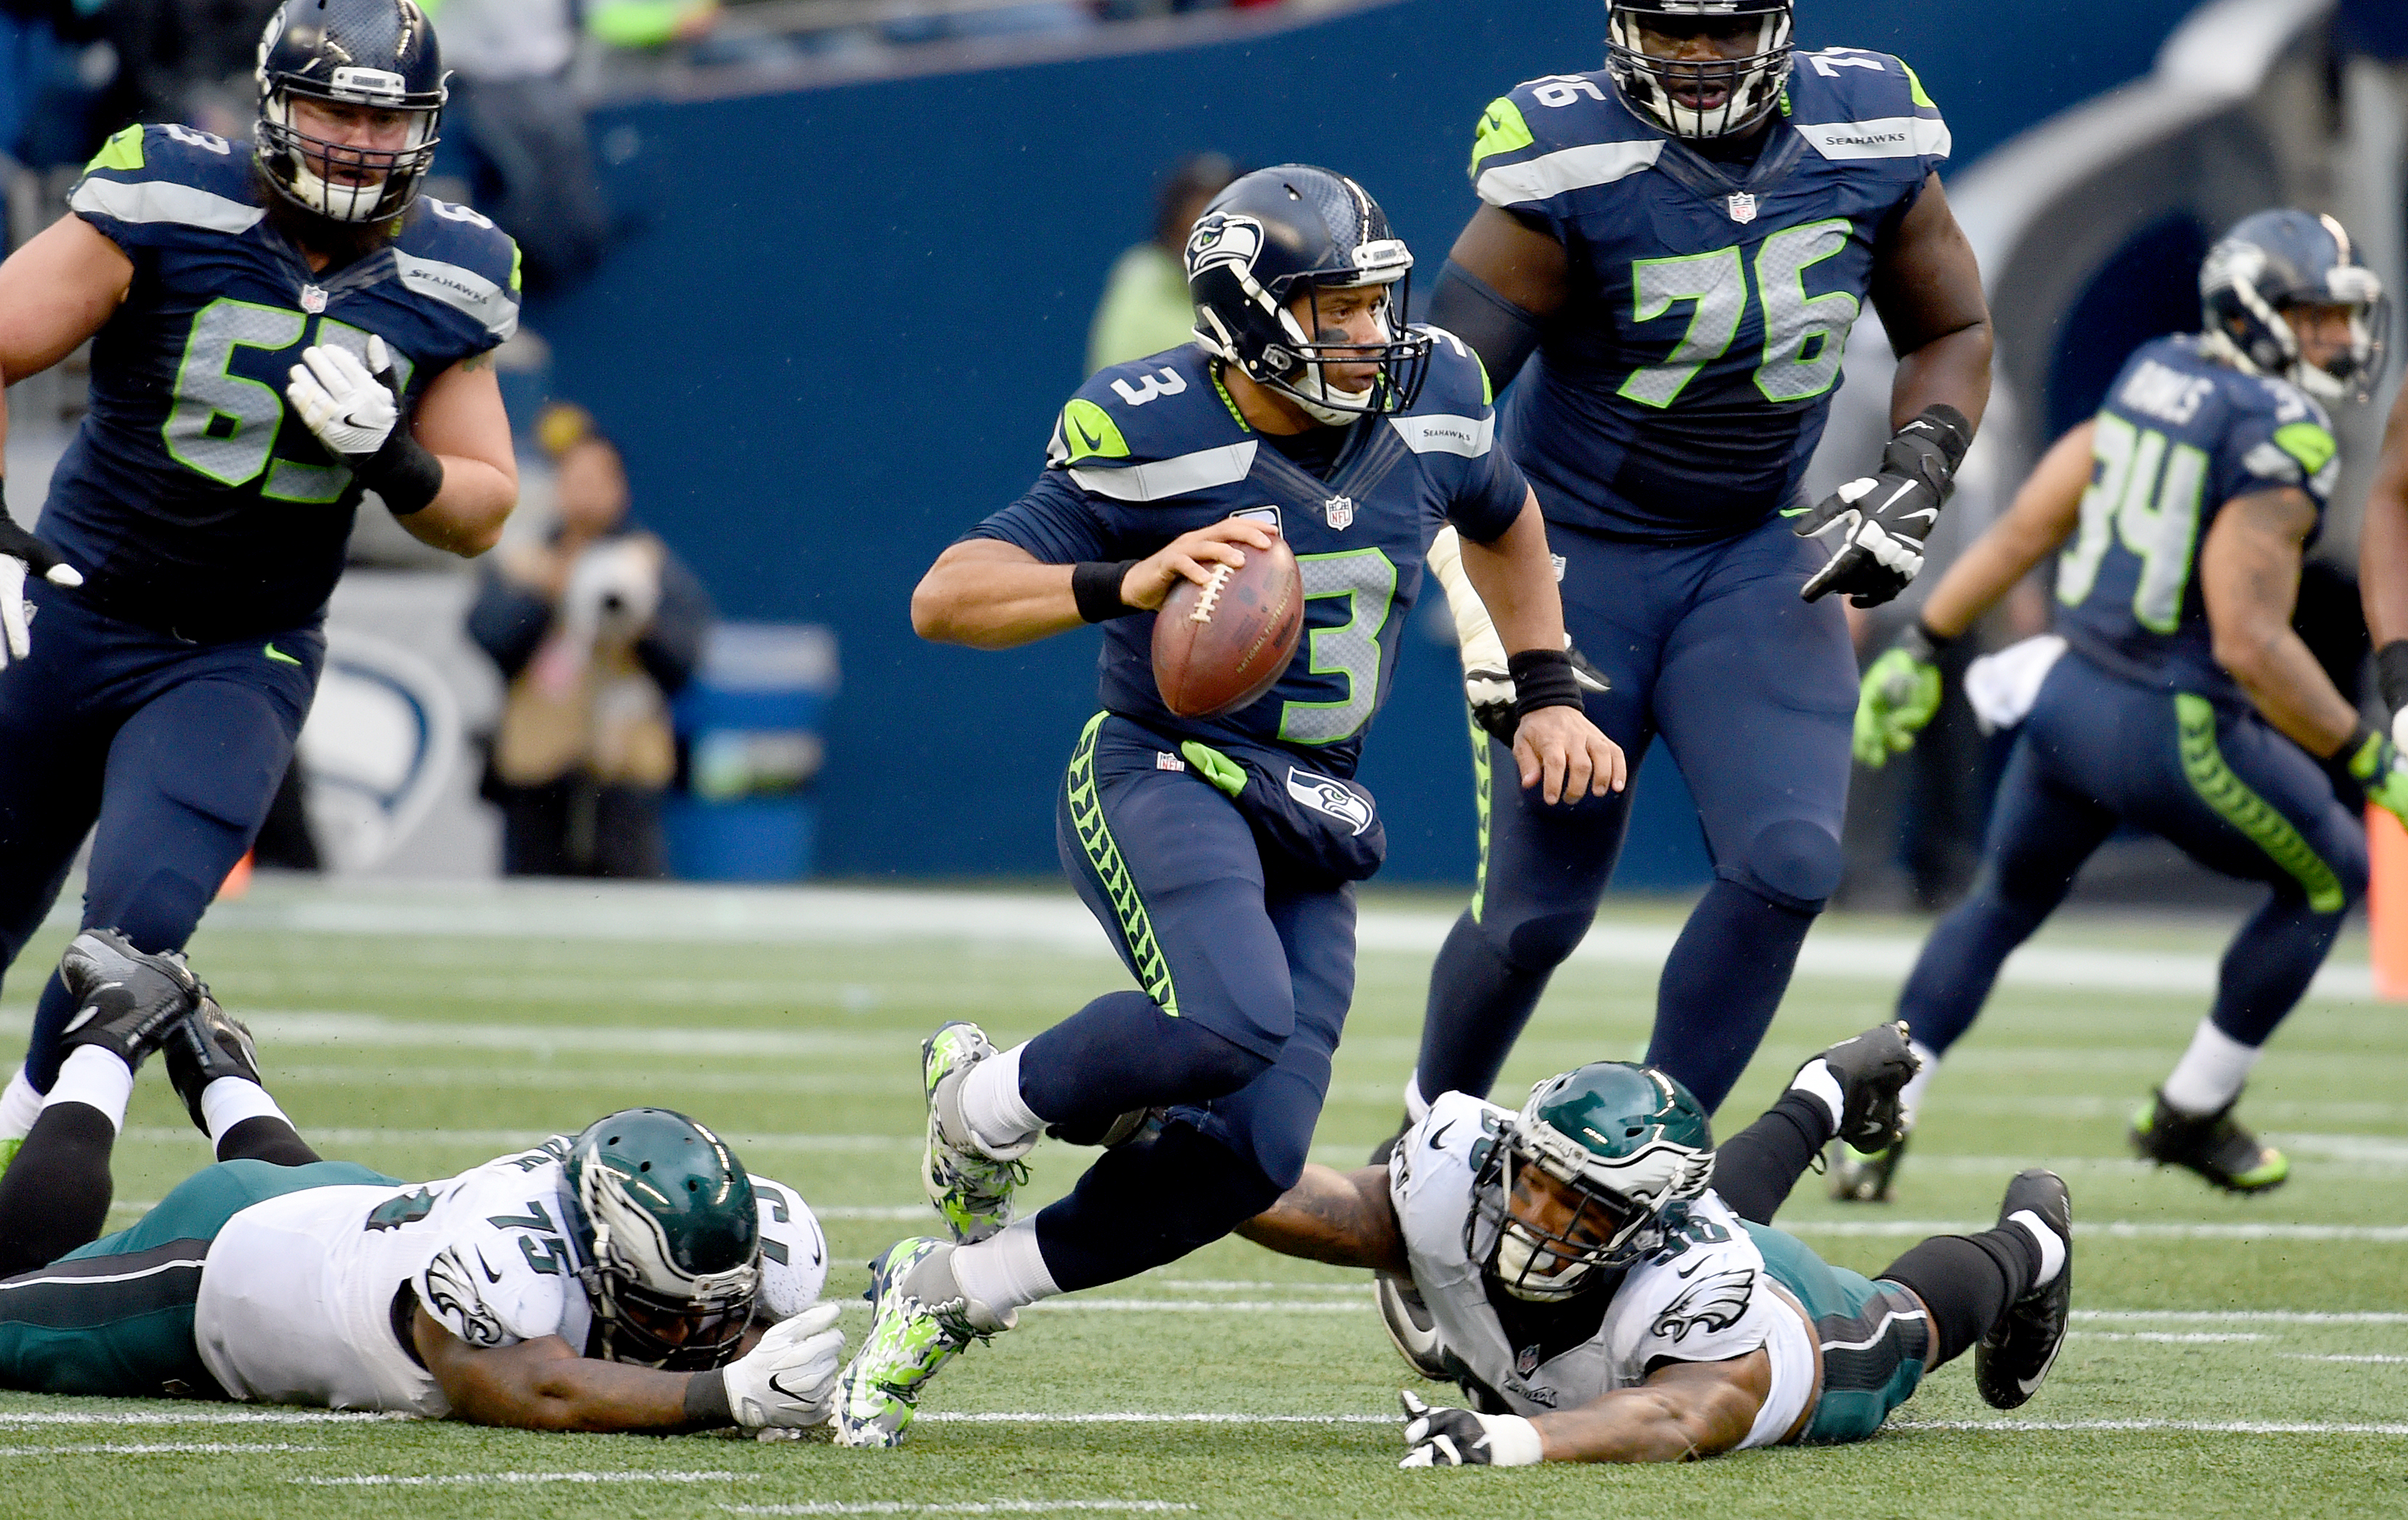 Seahawks humble Eagles on national television, 24-10